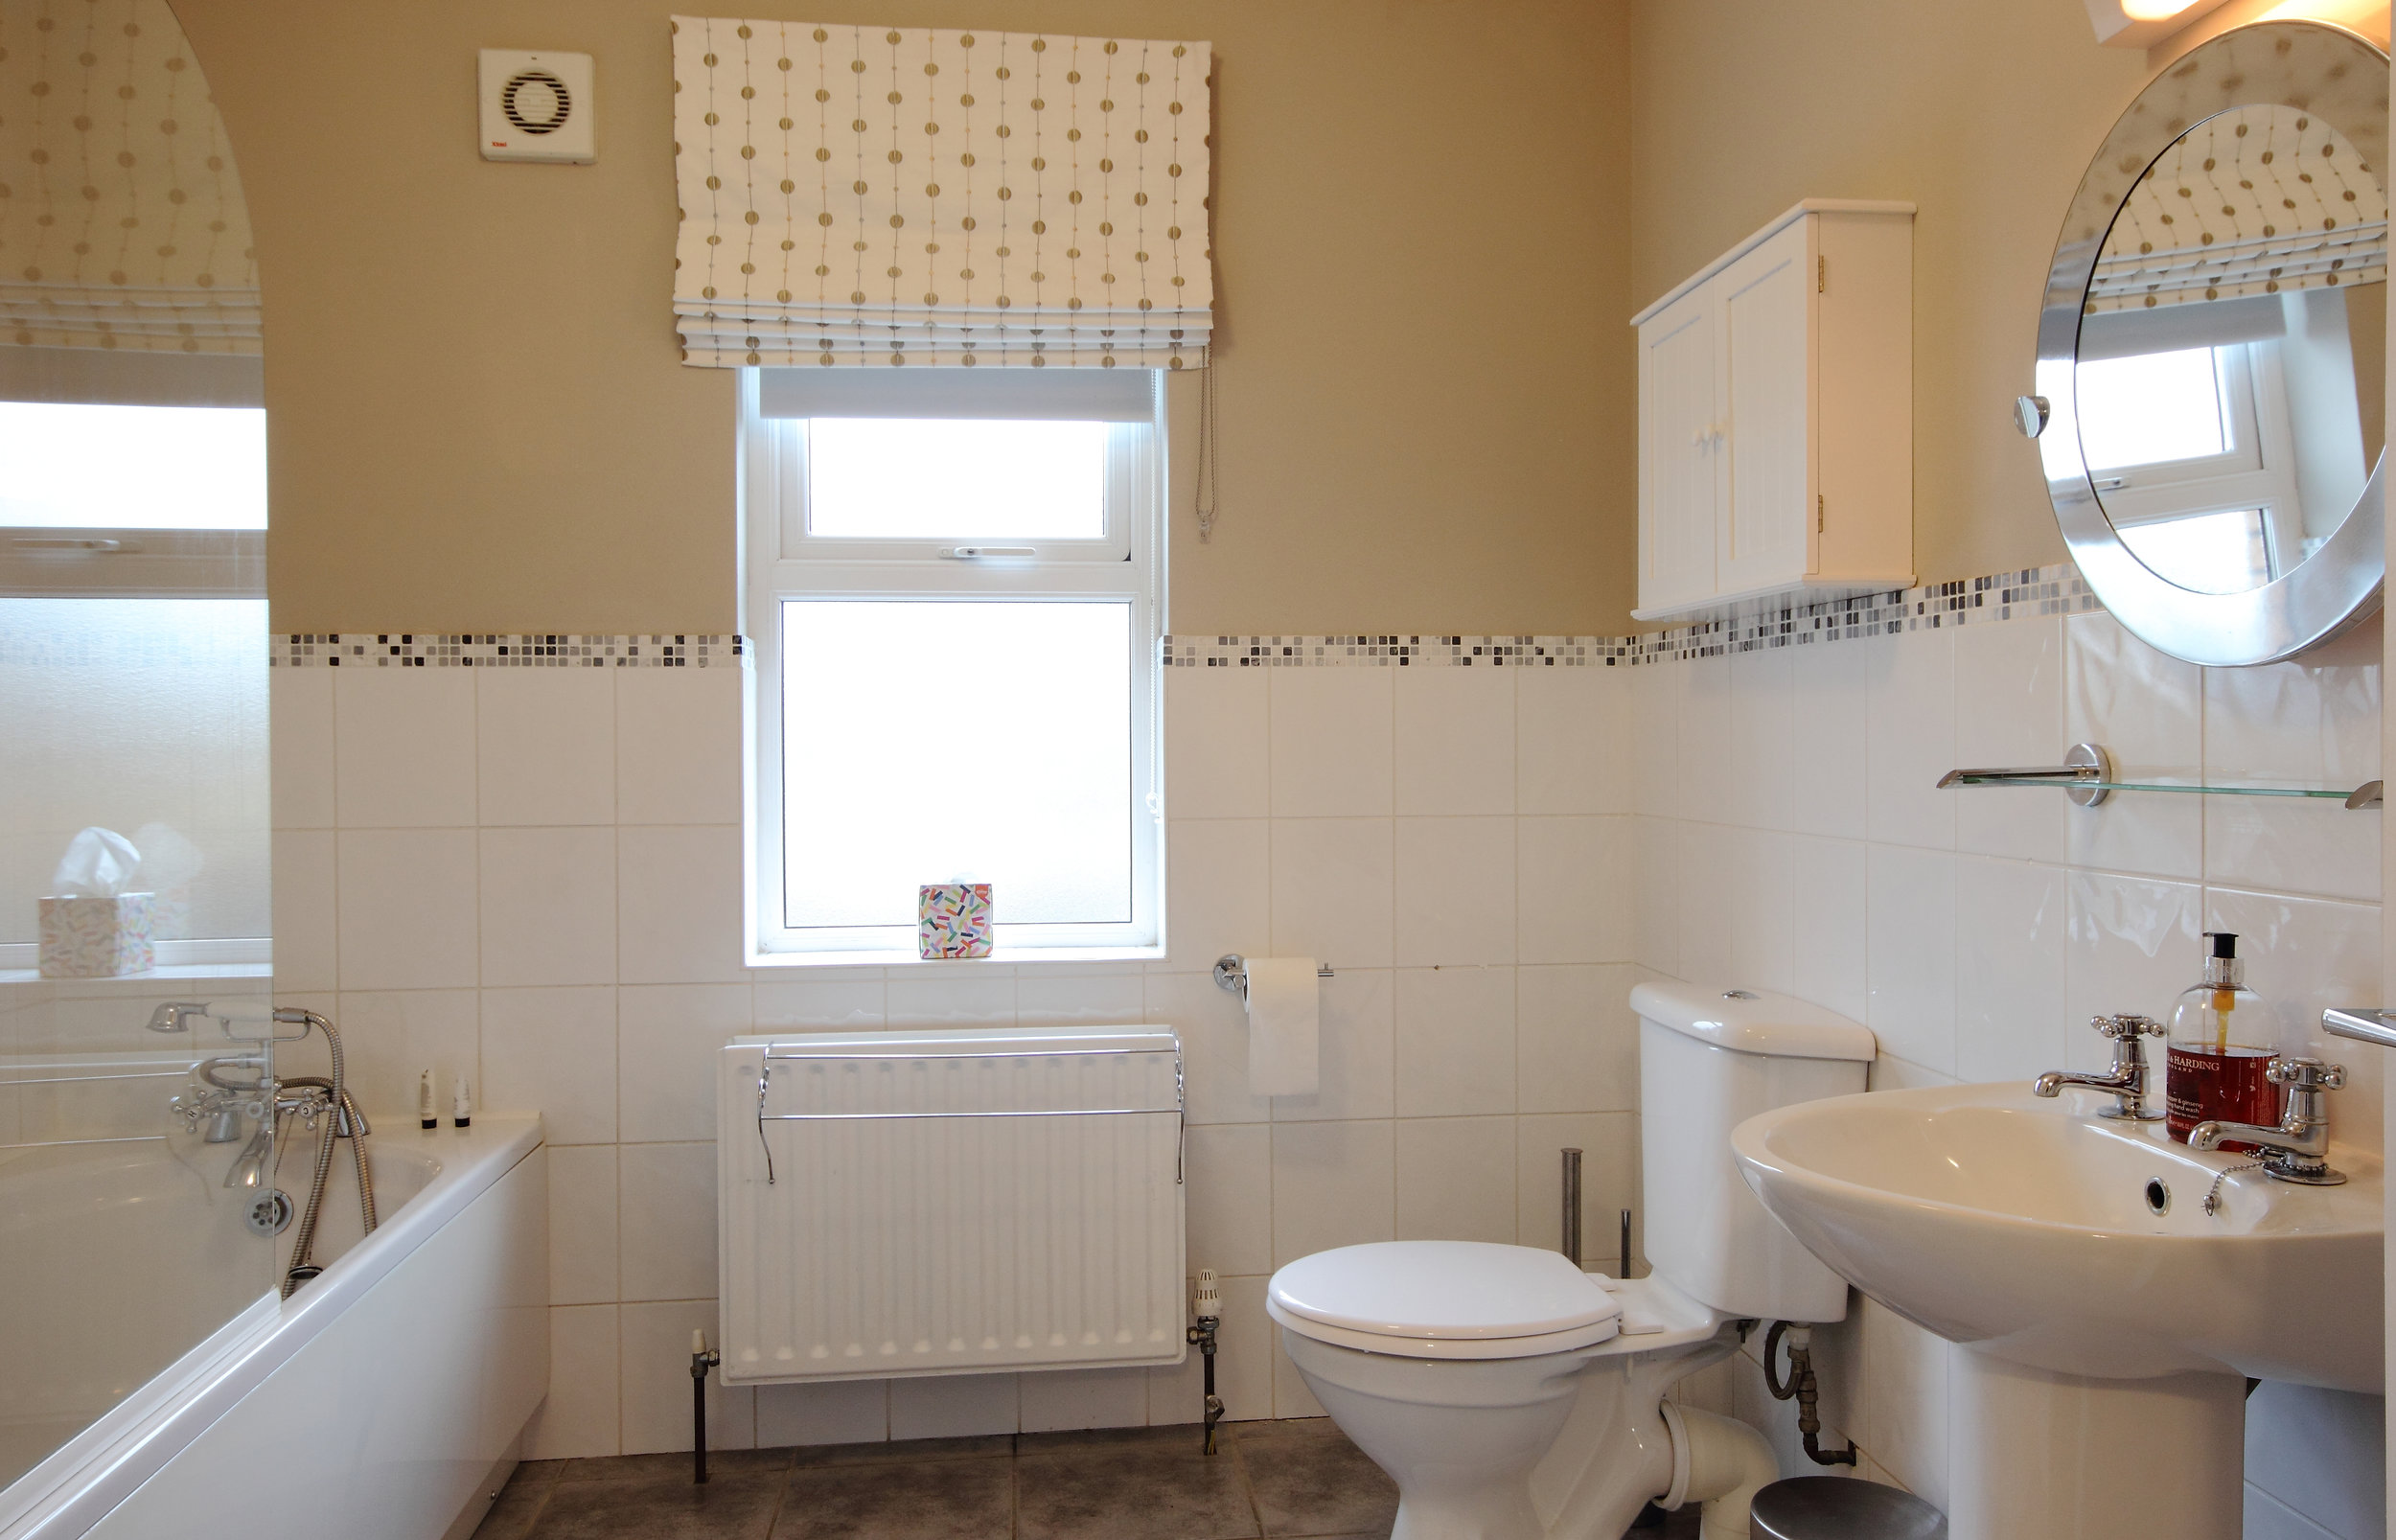 Self catering accommodation in county tyrone